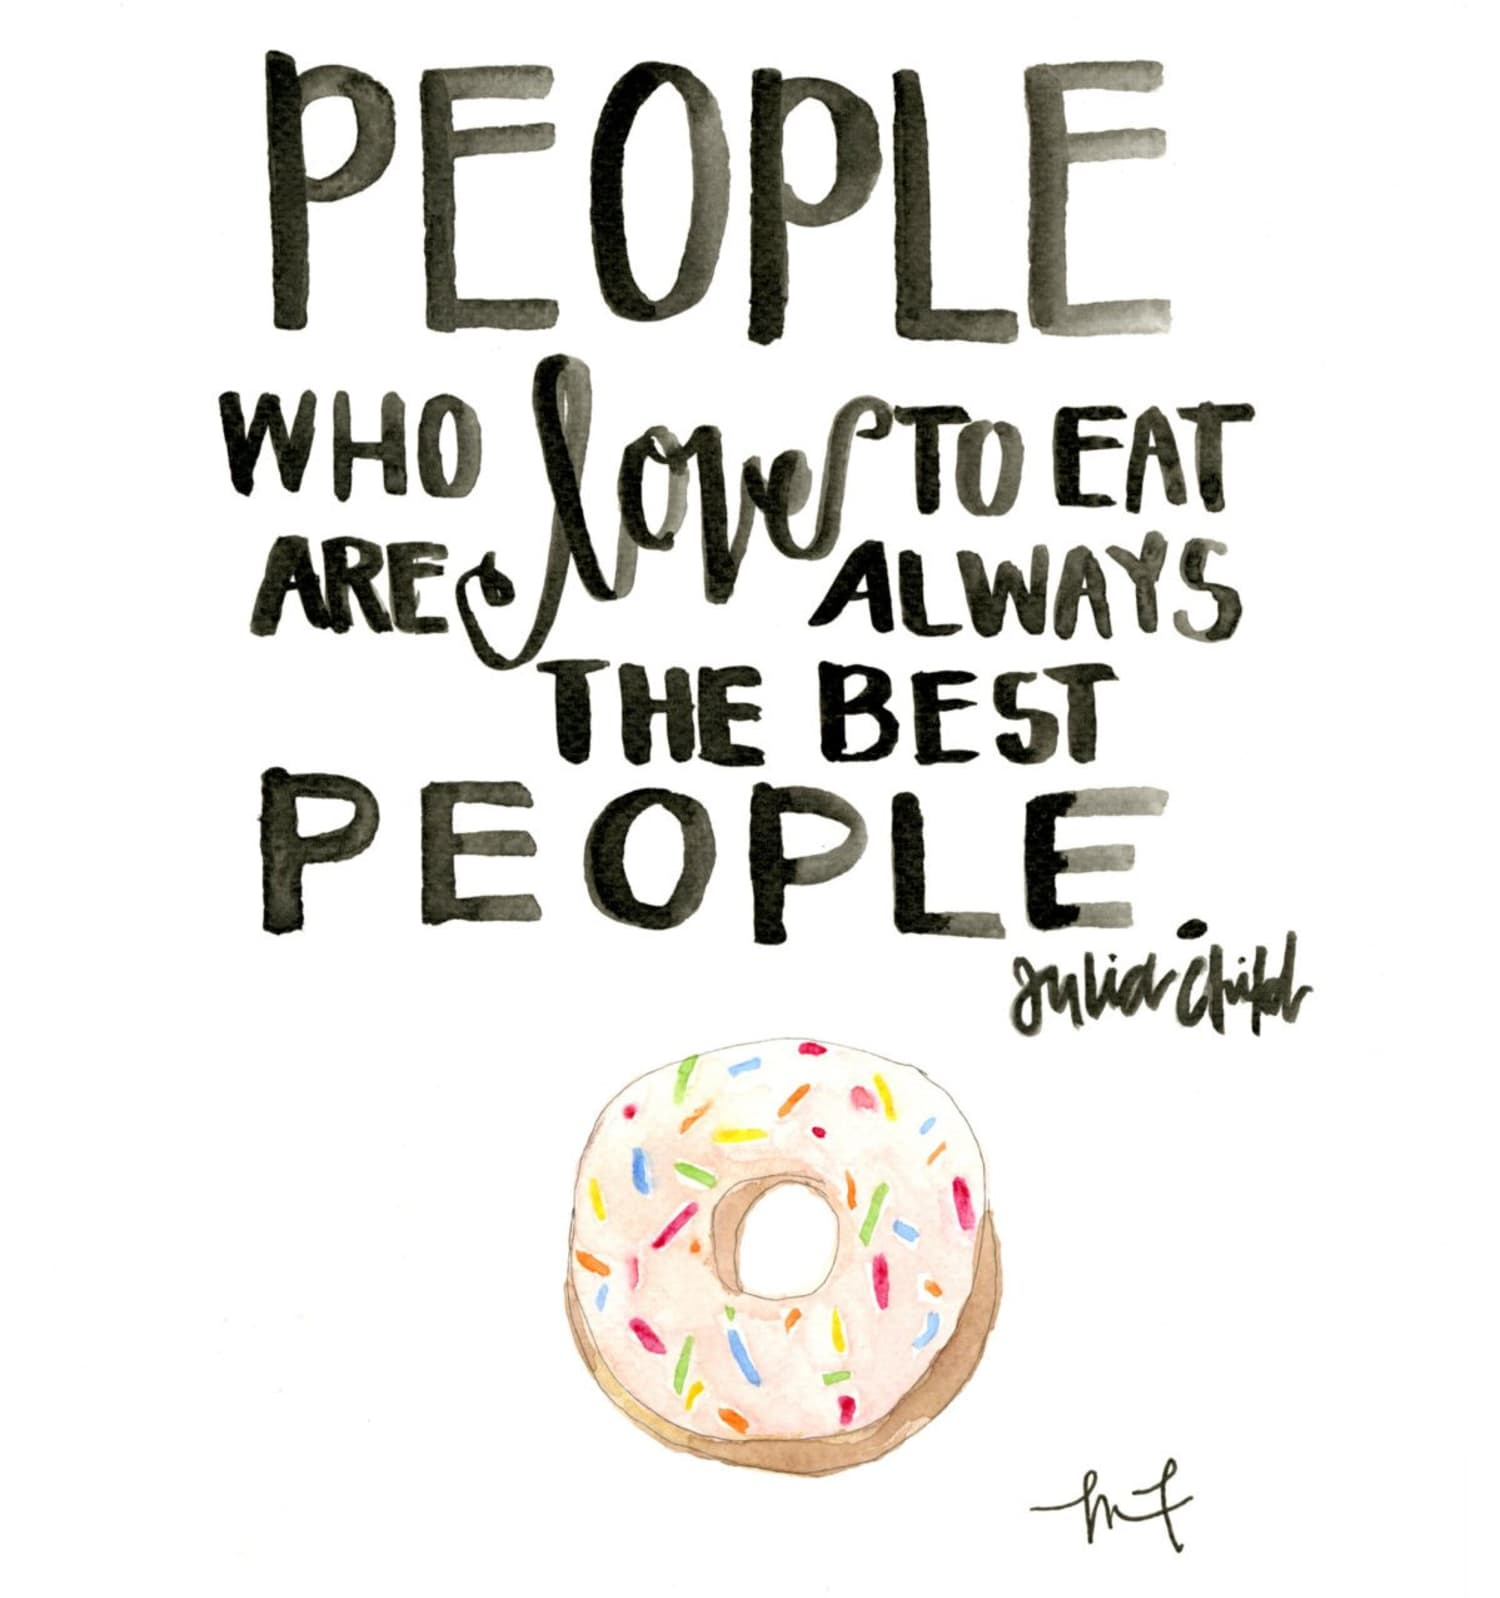 famous quotes about food and cooking to hang in your kitchen